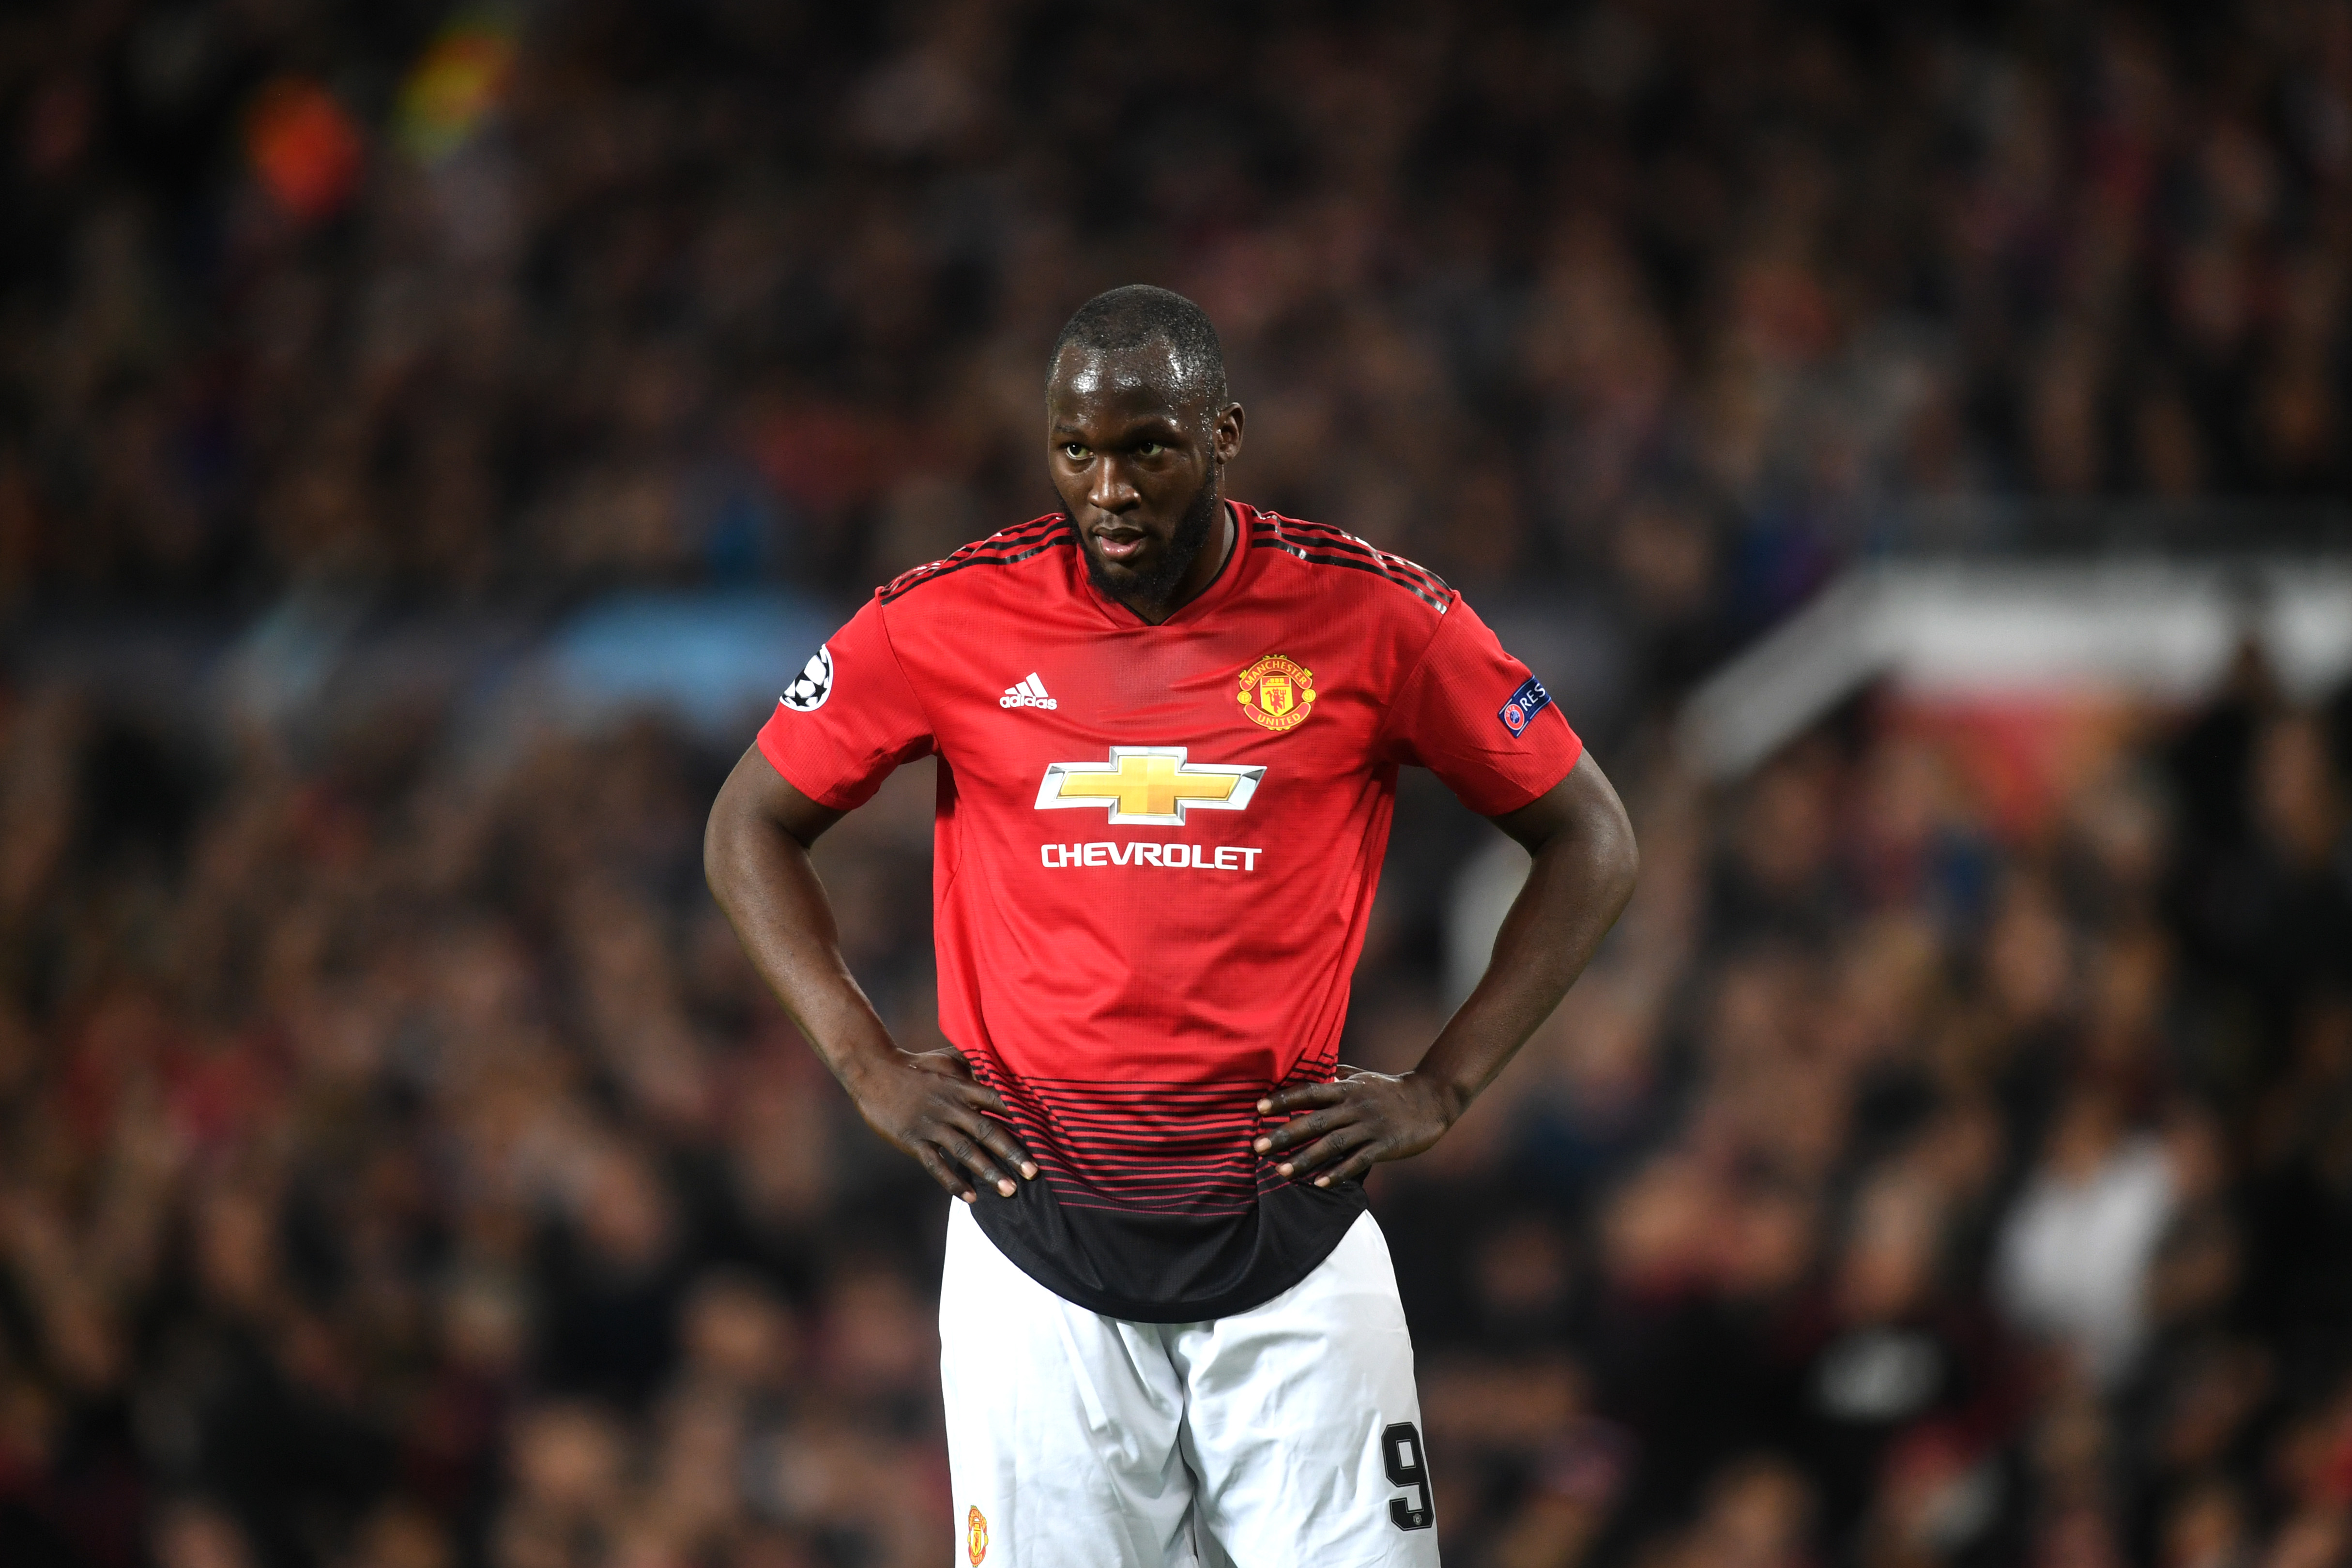 Romelu Lukaku scored 15 goals in all competitions for Manchester United last season